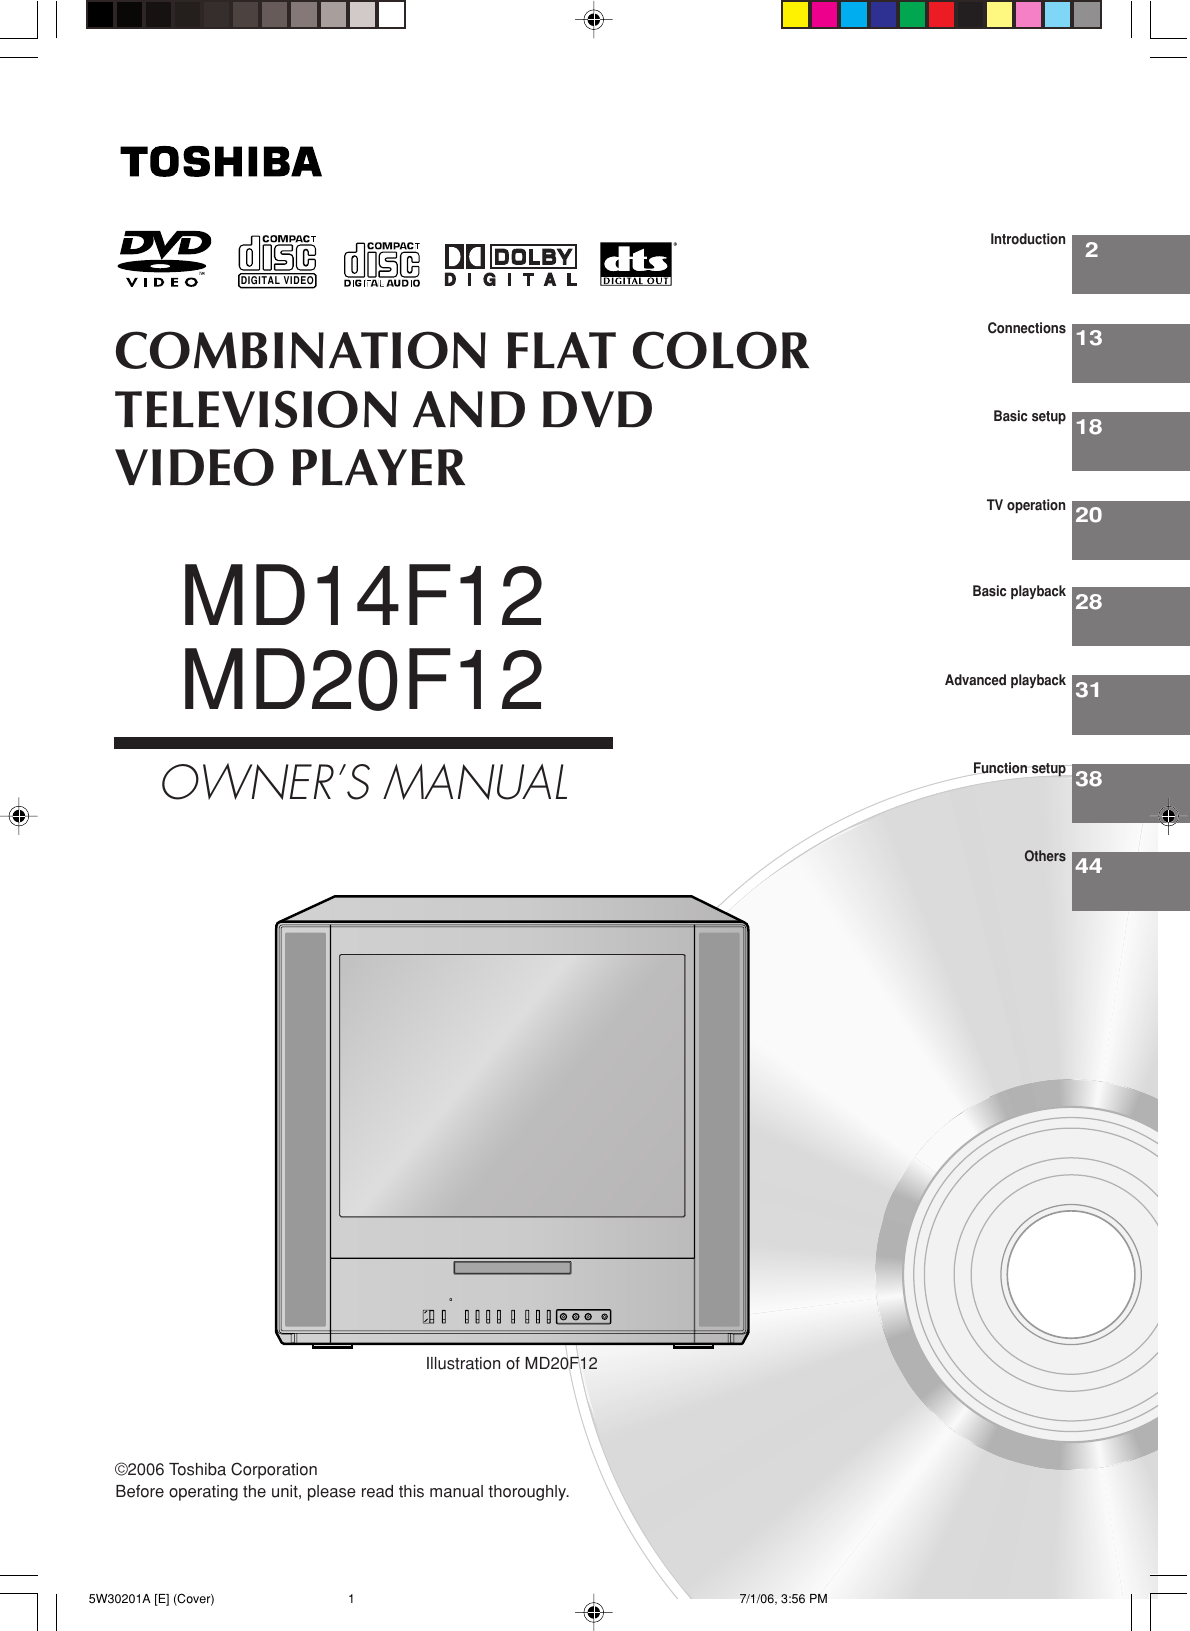 Toshiba Md14F12 Owners Manual 5W30201A [E] (Cover)